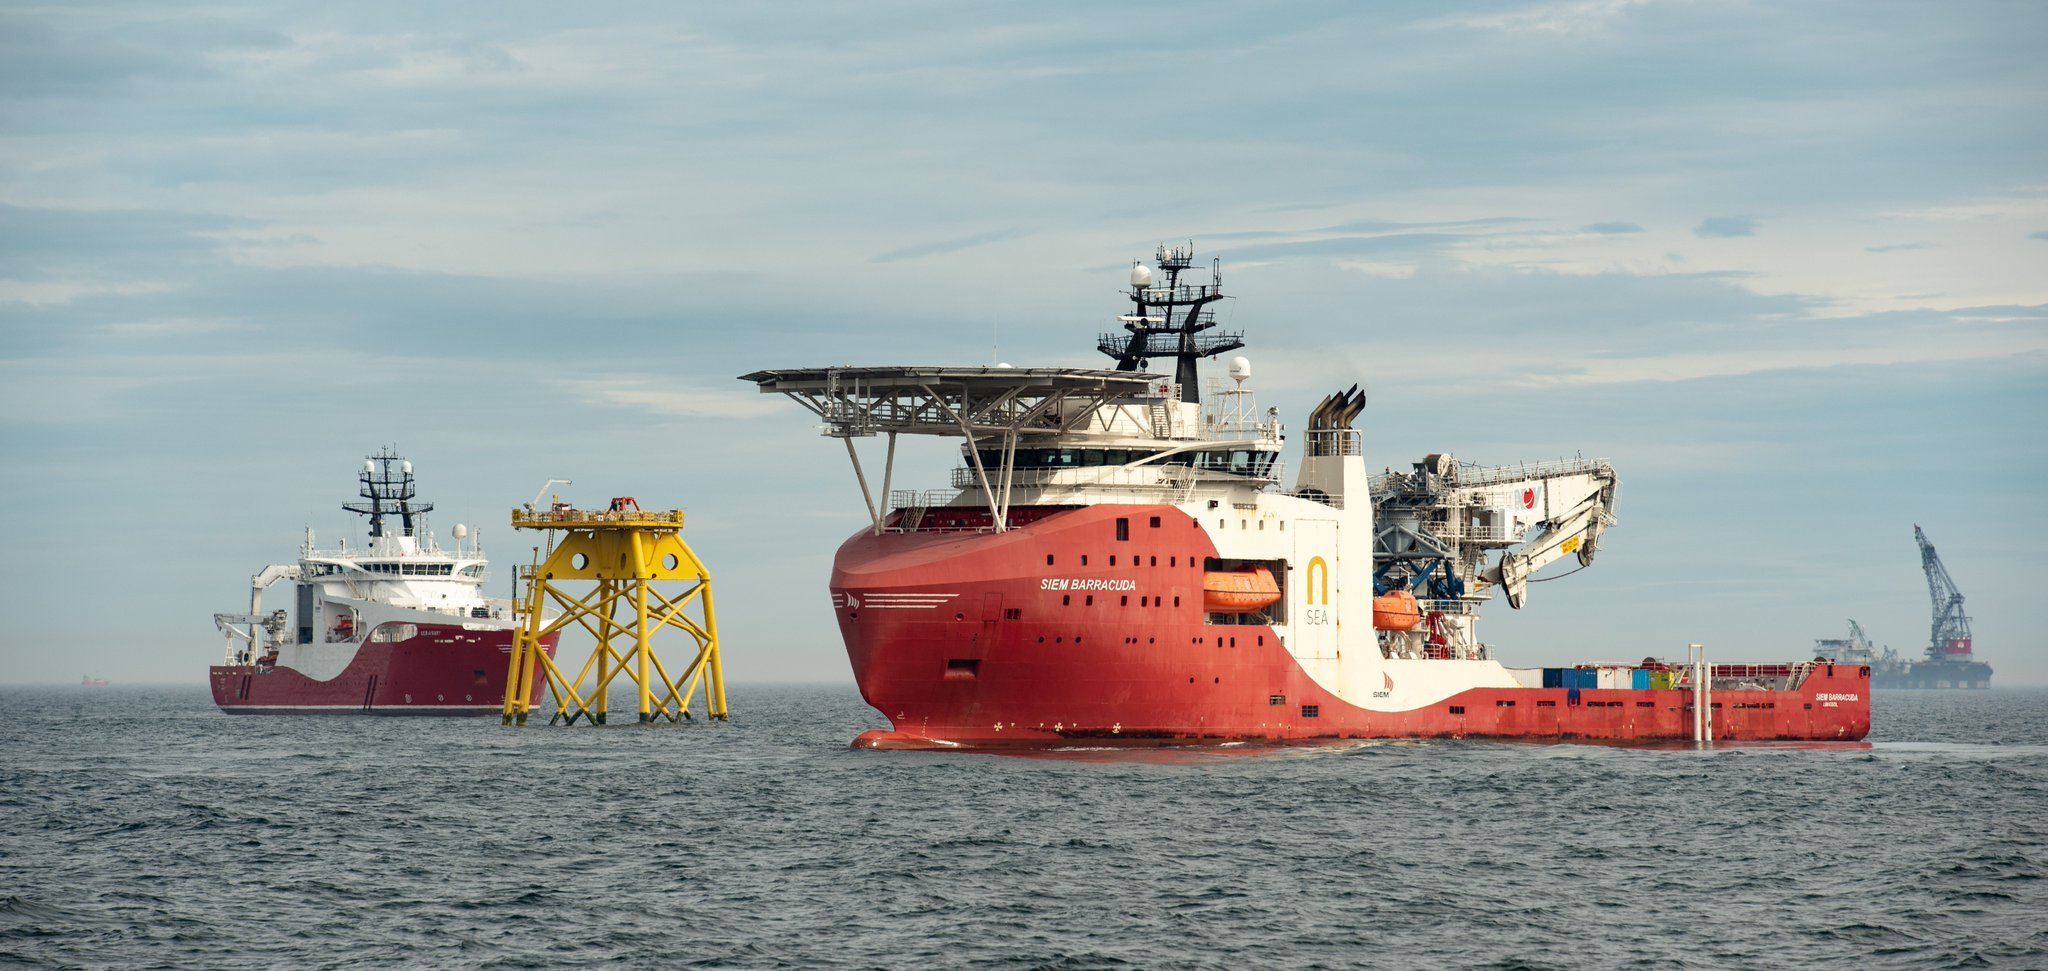 Cable installation is now complete for the 84-turbine windfarm